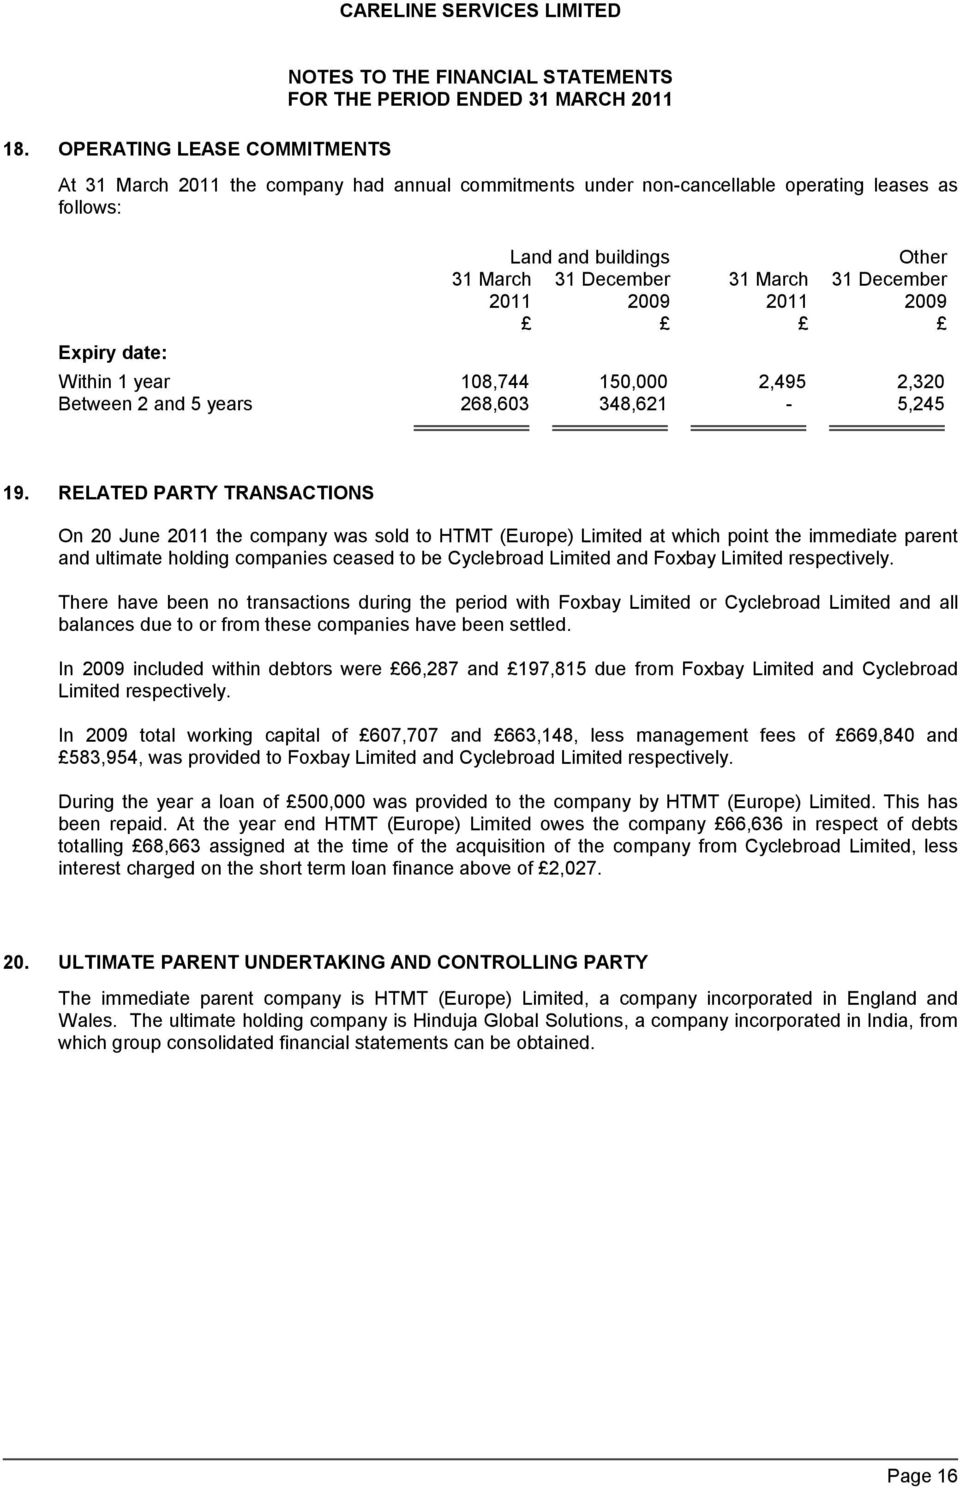 RELATED PARTY TRANSACTIONS On 20 June 2011 the company was sold to HTMT (Europe) Limited at which point the immediate parent and ultimate holding companies ceased to be Cyclebroad Limited and Foxbay